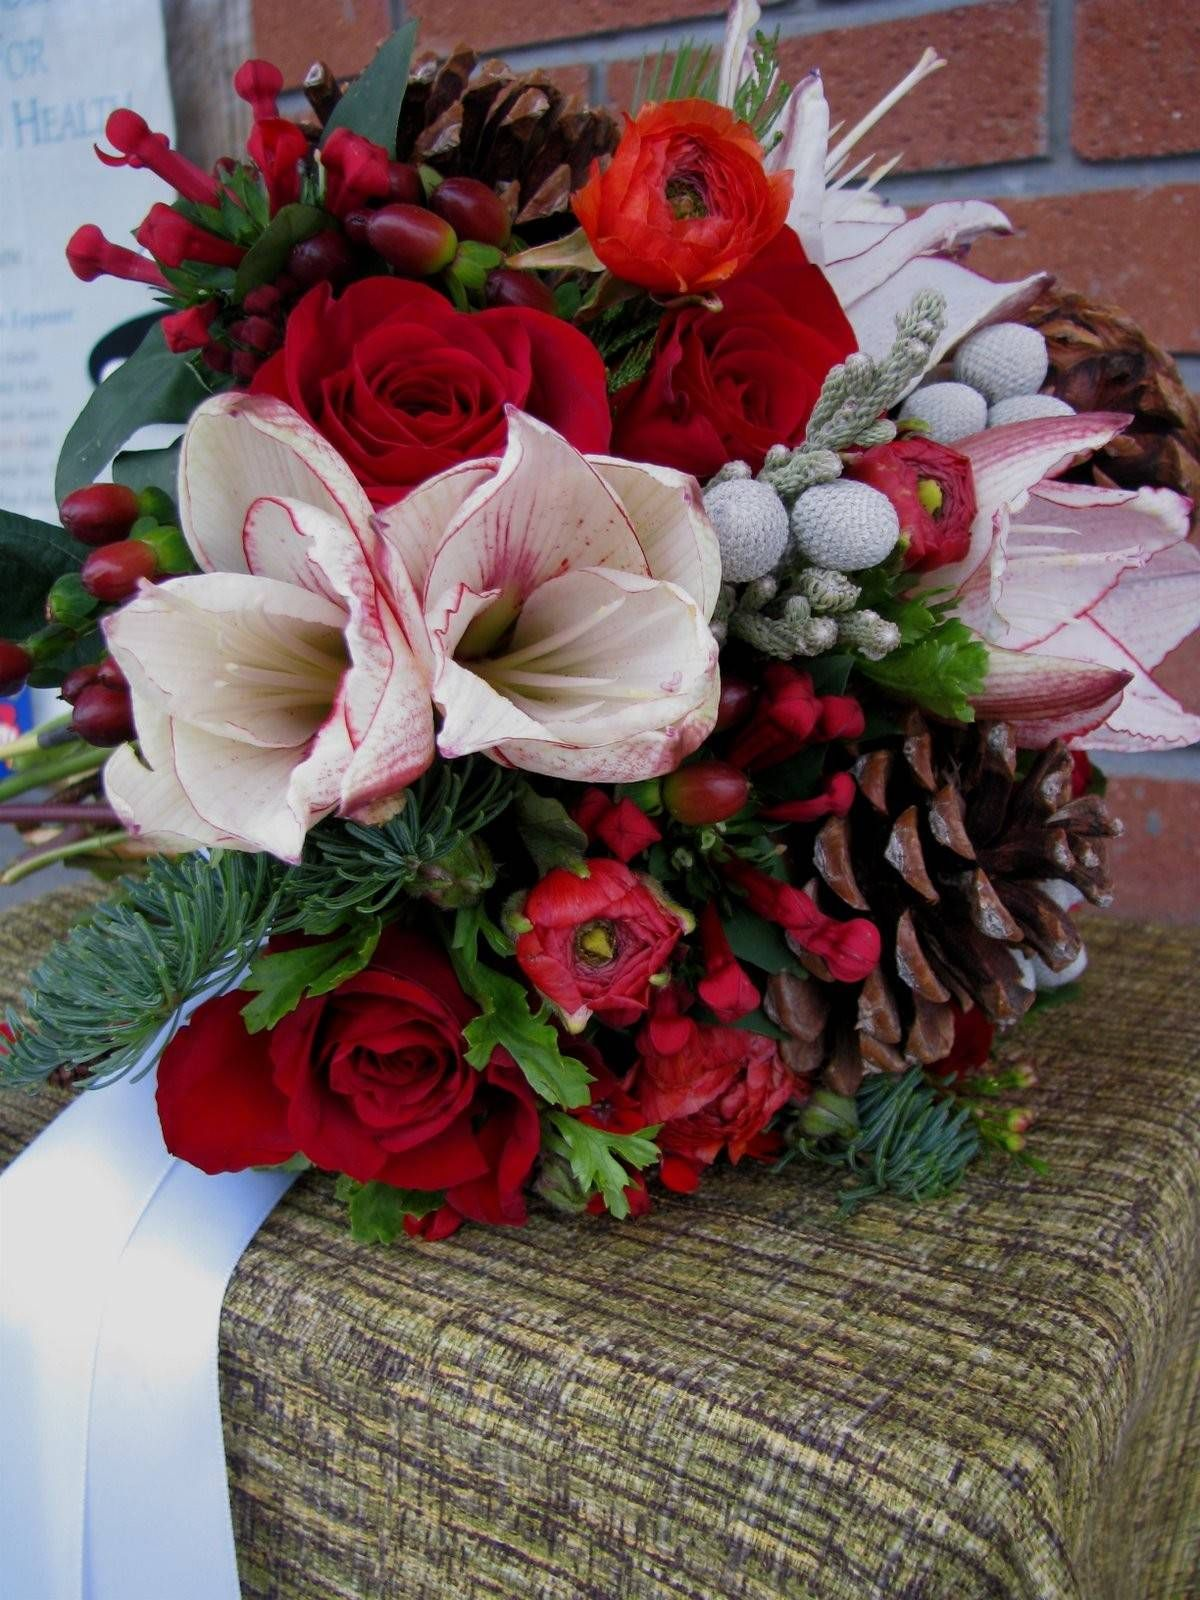 12 Flowers in Season for Your Winter Wedding | Winter flowers ...